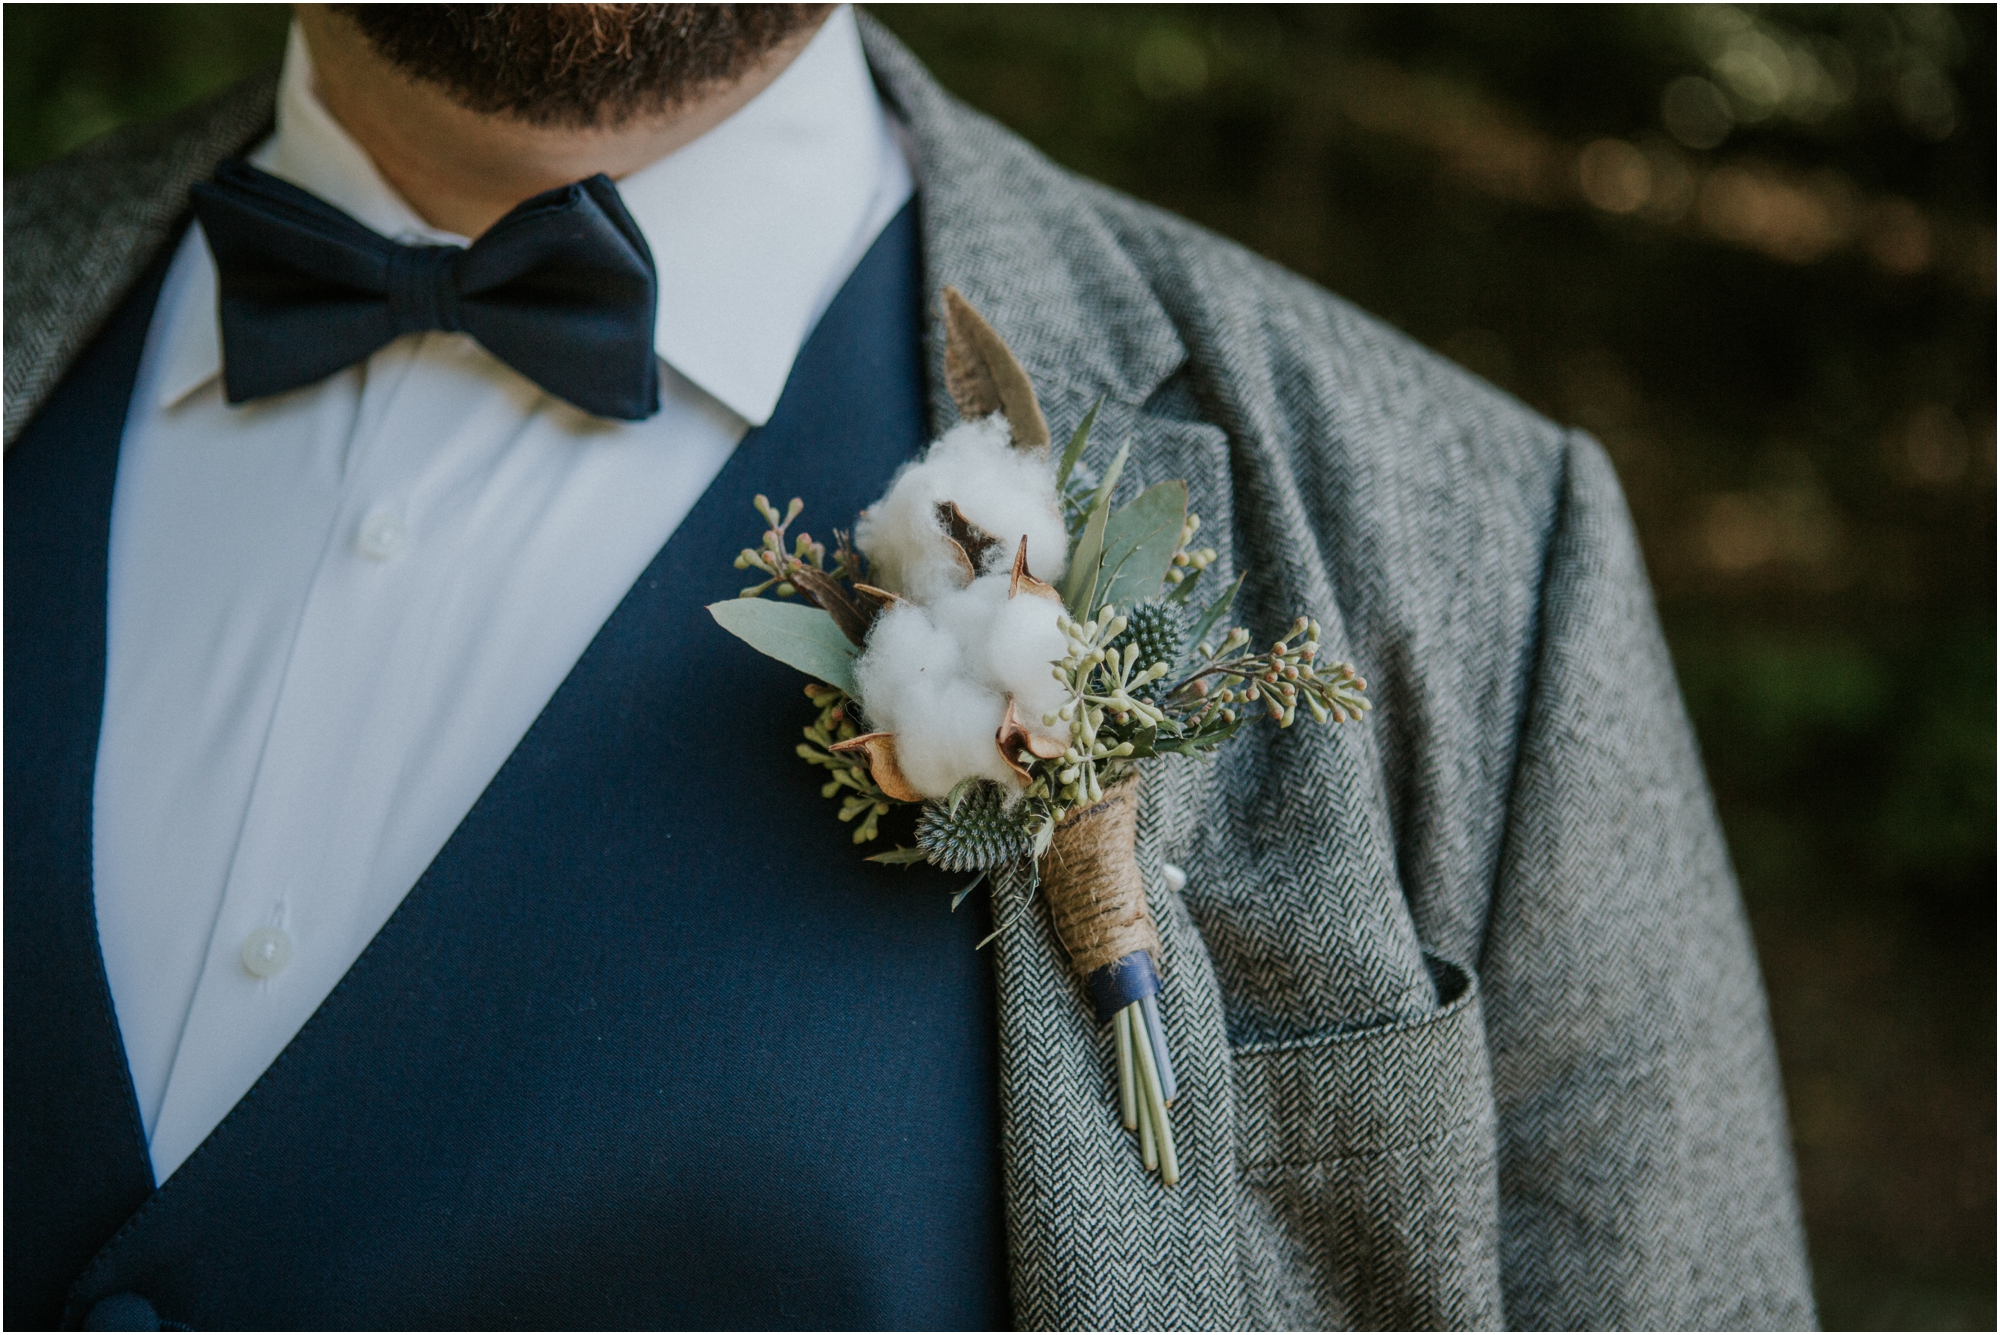 caryville-robbins-middle-tennessee-intimate-cozy-fall-navy-rustic-backyard-wedding_0033.jpg